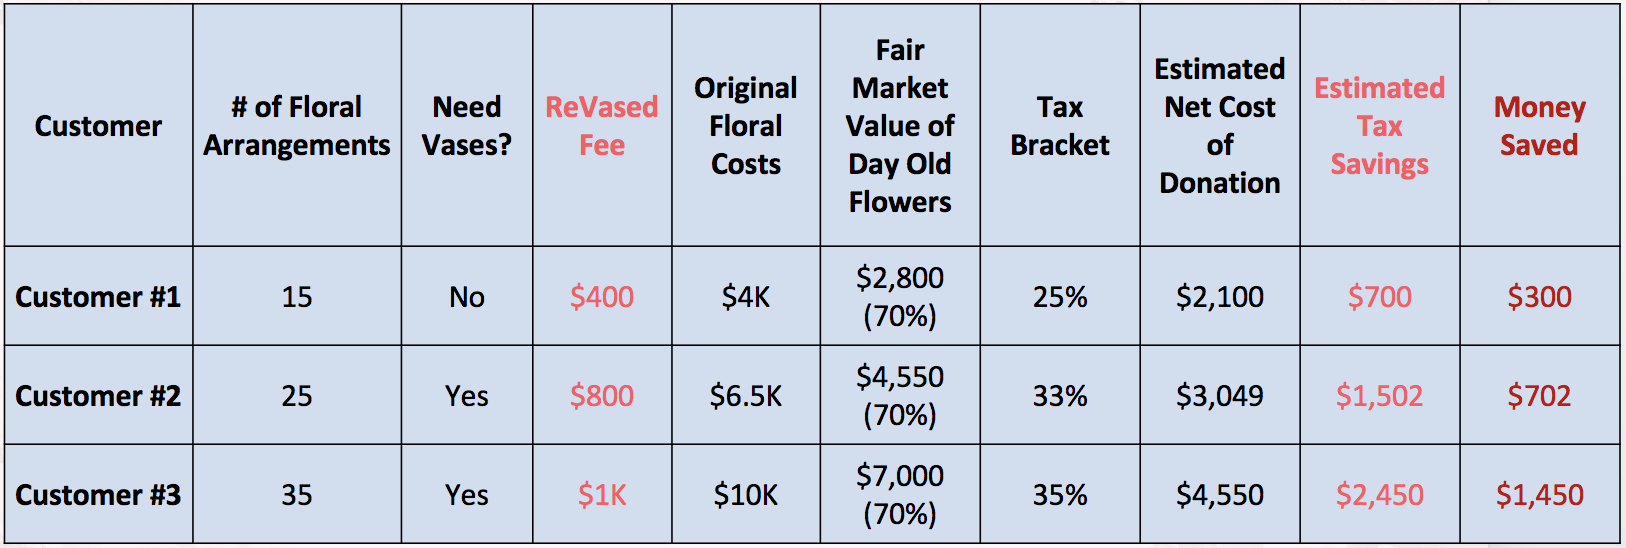 Please note that ReVased makes no guarantees about the exact amount of deduction. In the examples above, we've used an estimate of the Fair Market Value of day old flowers being 70% original cost. As noted in the previous question, you should consult your accountant and/or qualified appraiser to determine the exact deductible amount. You can also use The Charity Navigator's    Giving Calculator    for an estimate of your tax savings.